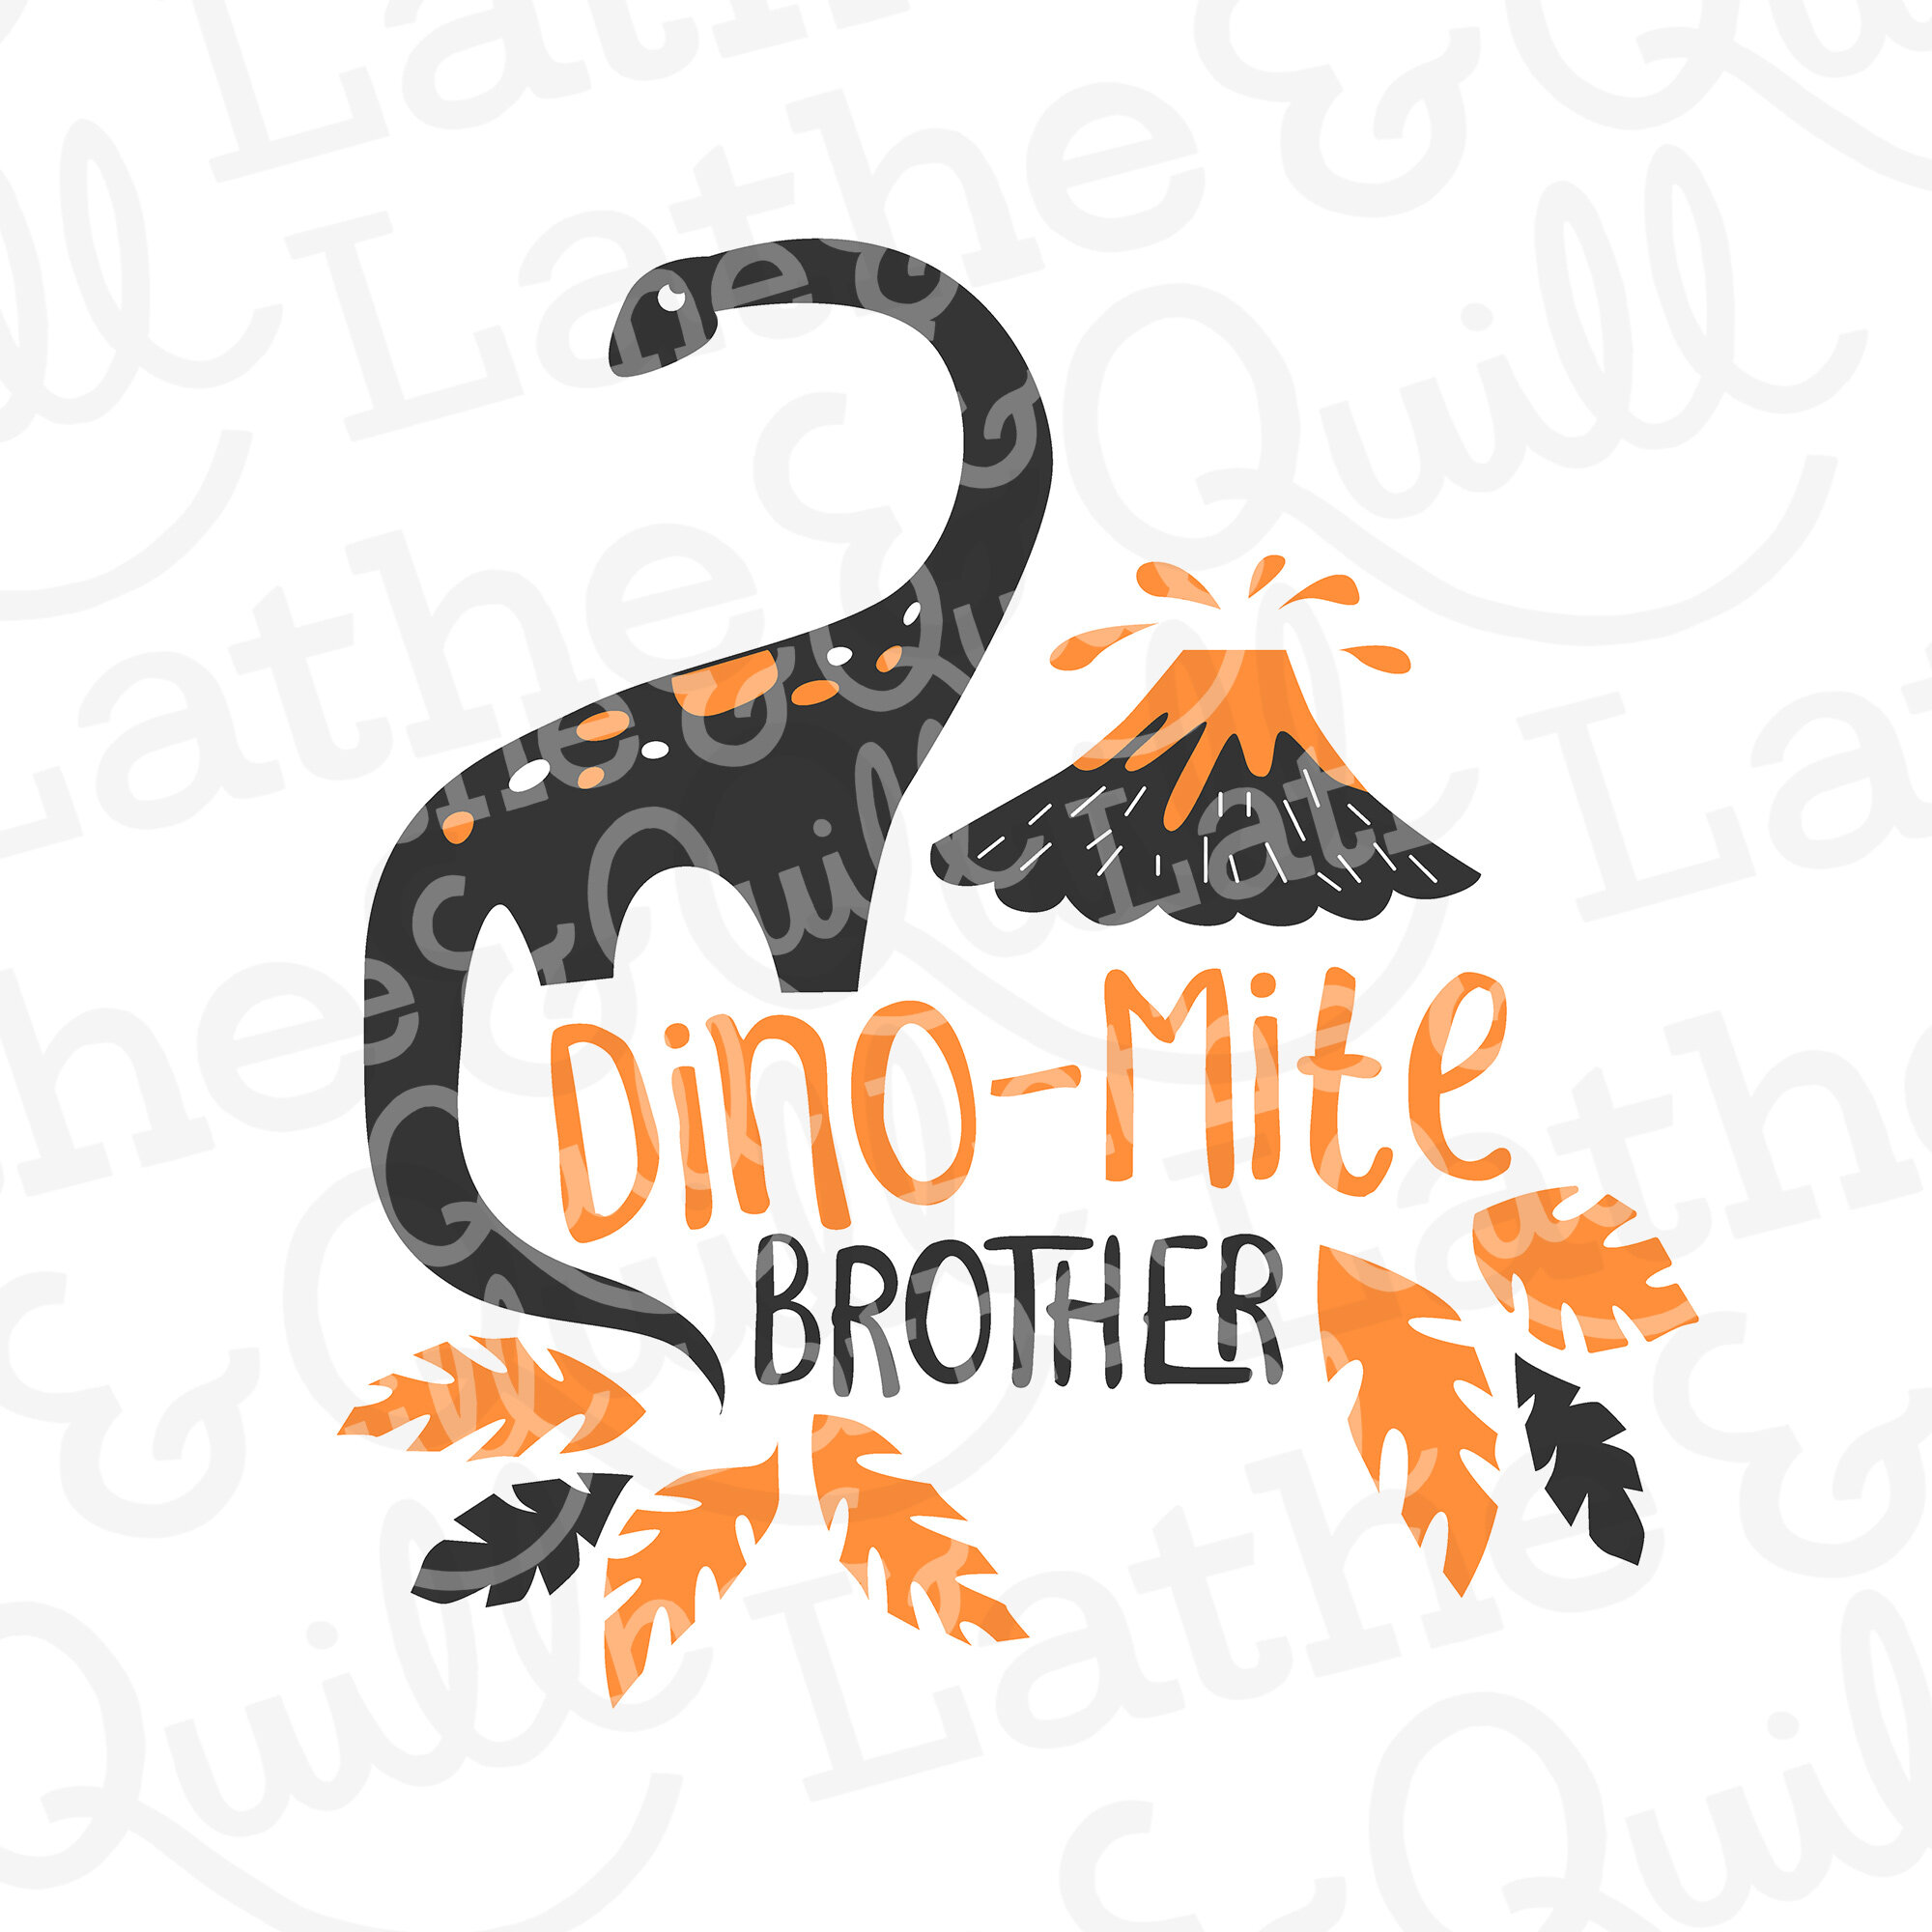 Dino-mite Brother SVG file for Cricut and Silhouette Design Studios to make artwork for tshirts and more.